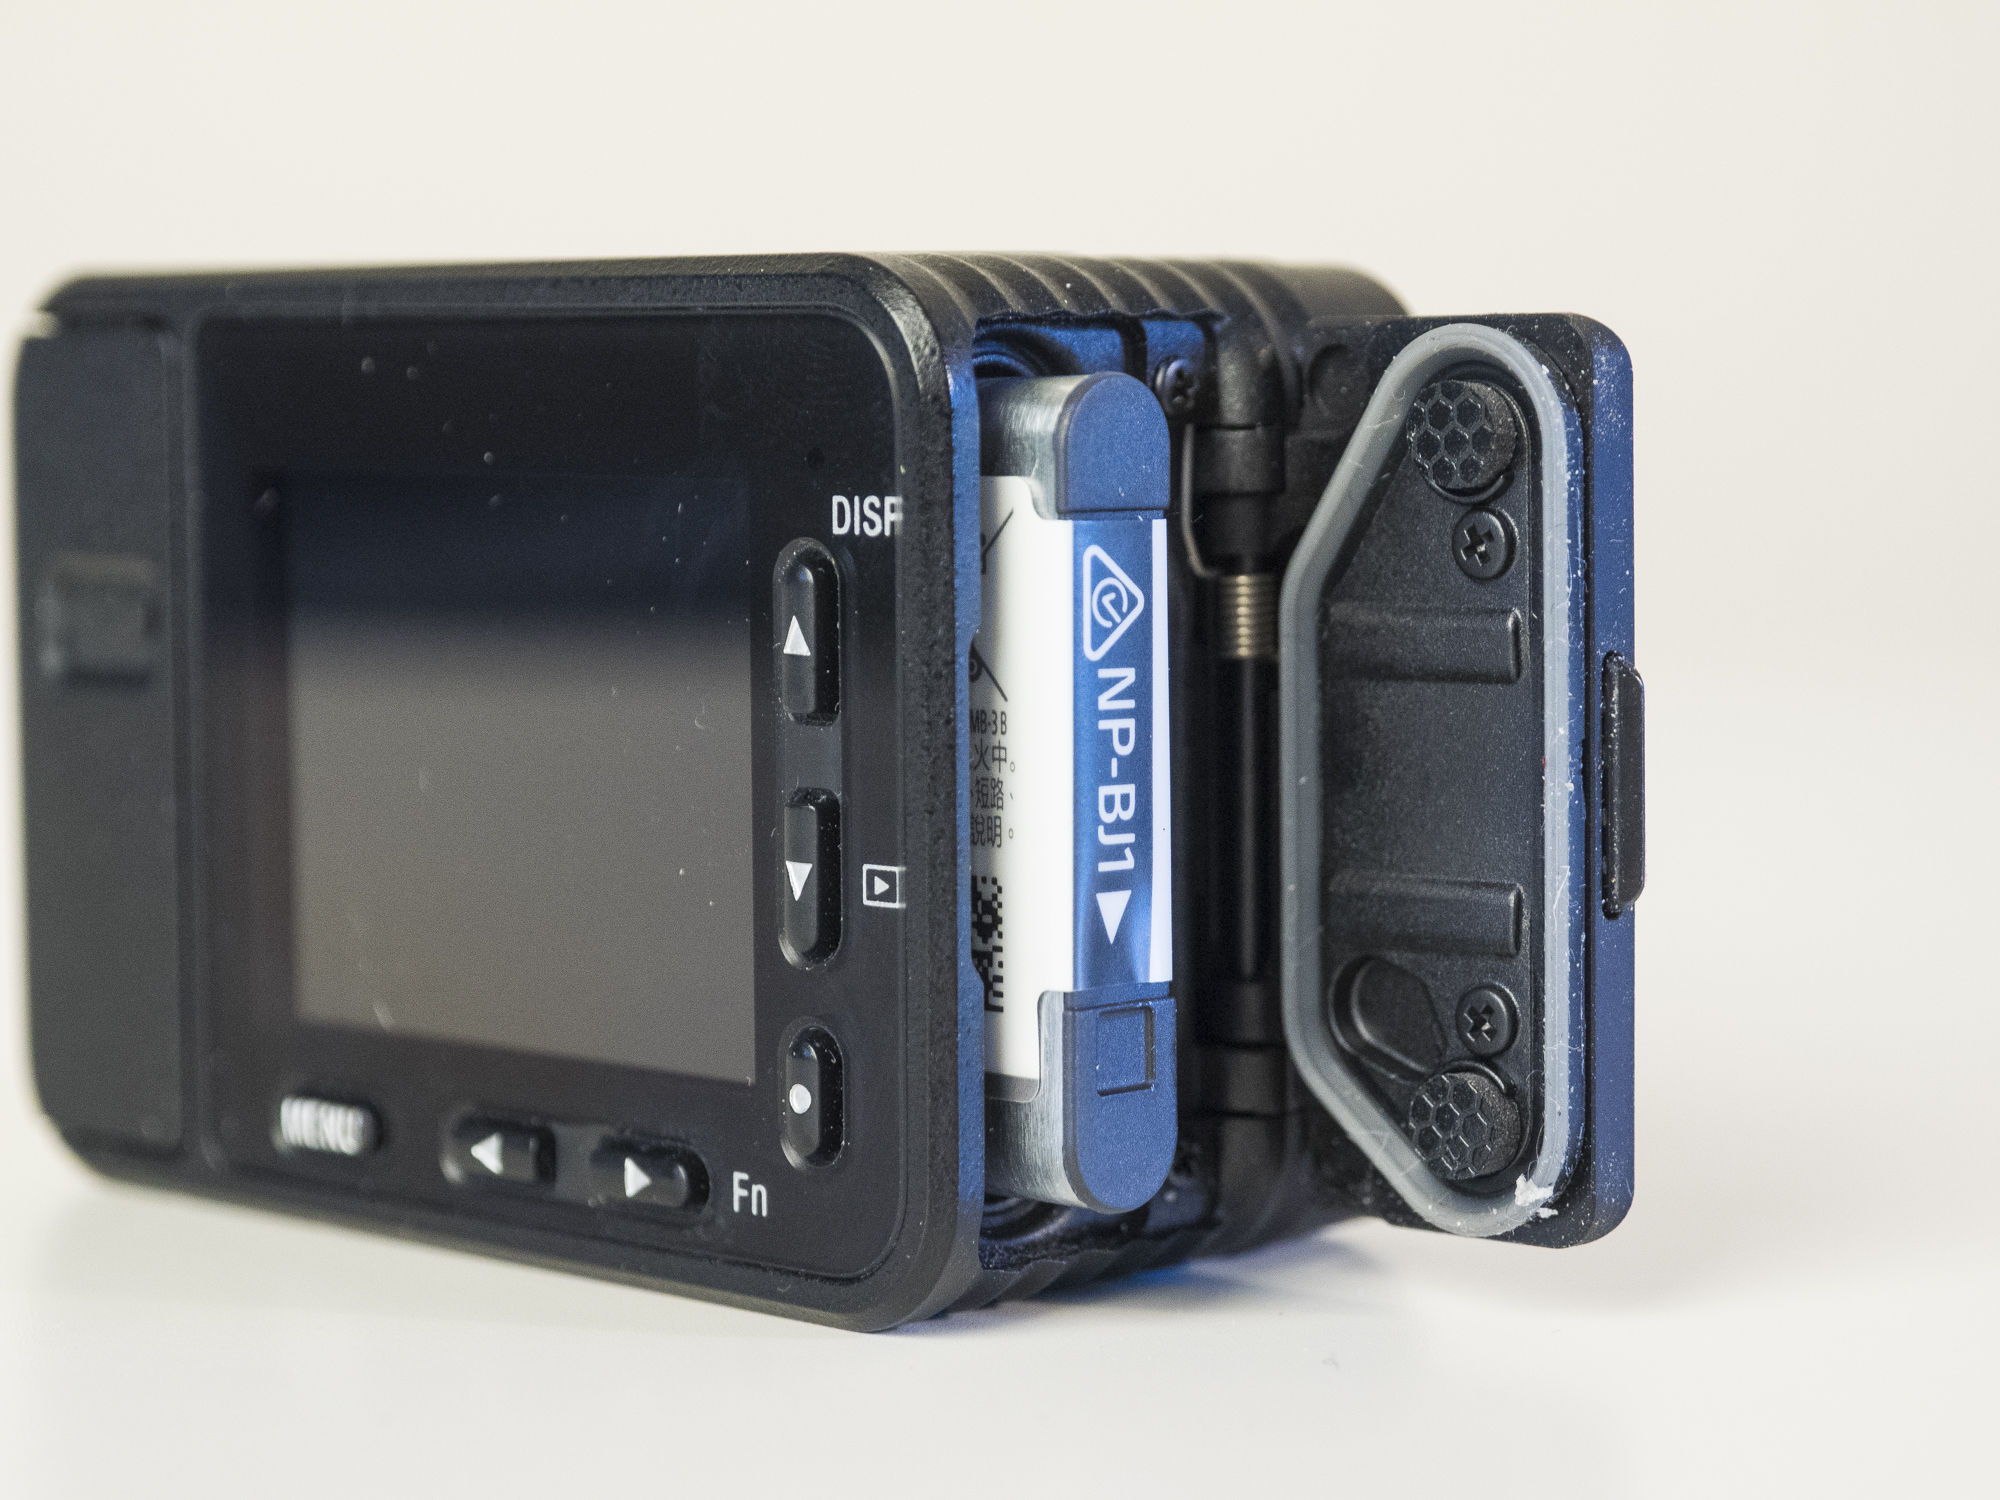 sony rxo product images 16.jpg